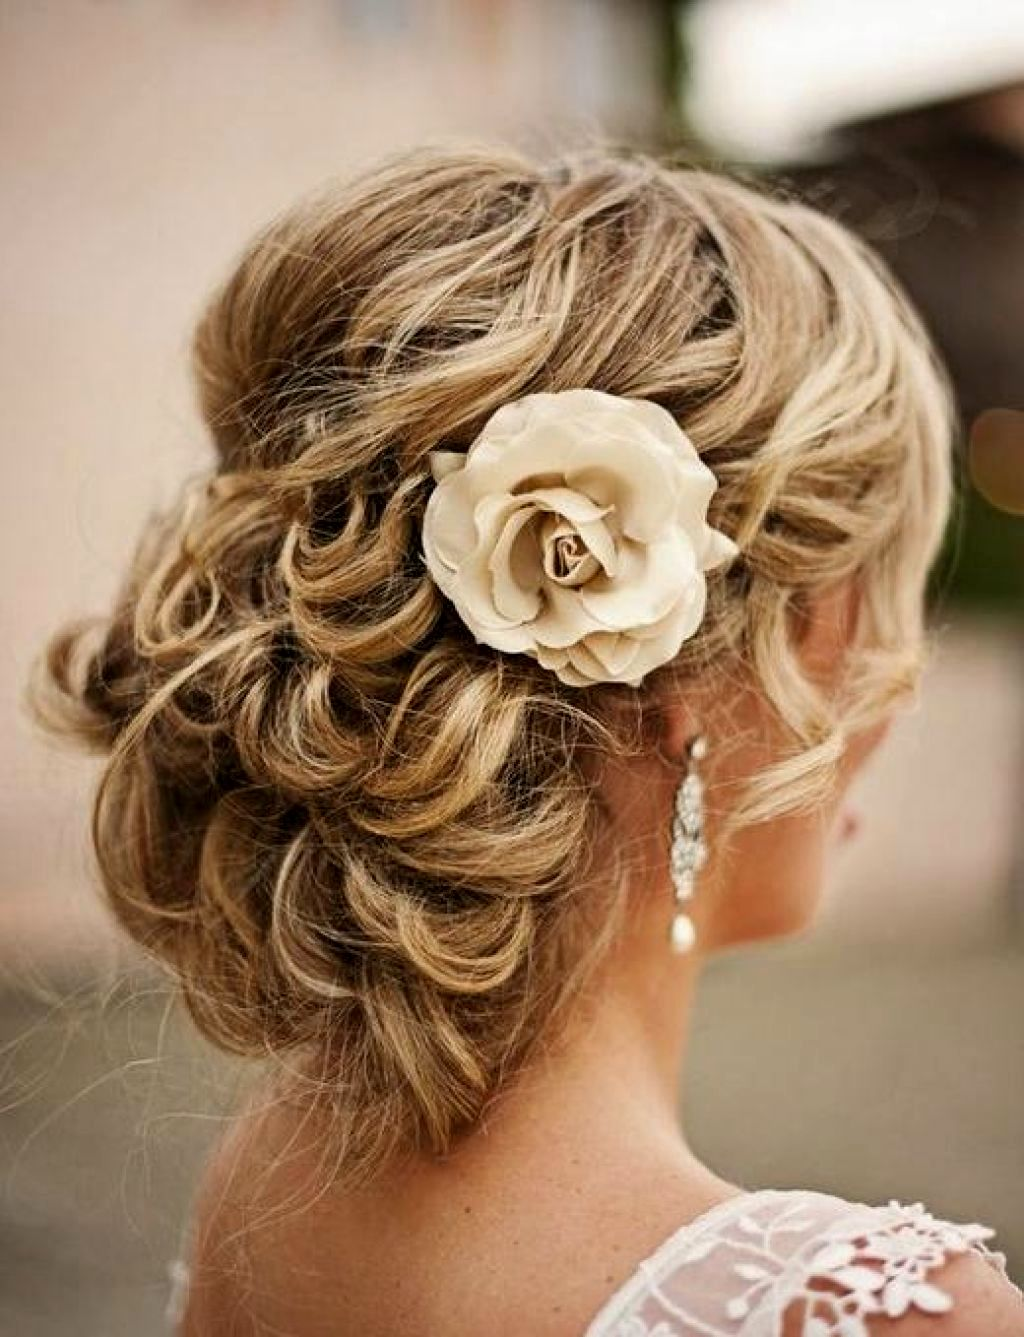 lovely hairstyles with long hair décor-stylish hairstyles with long-haired models